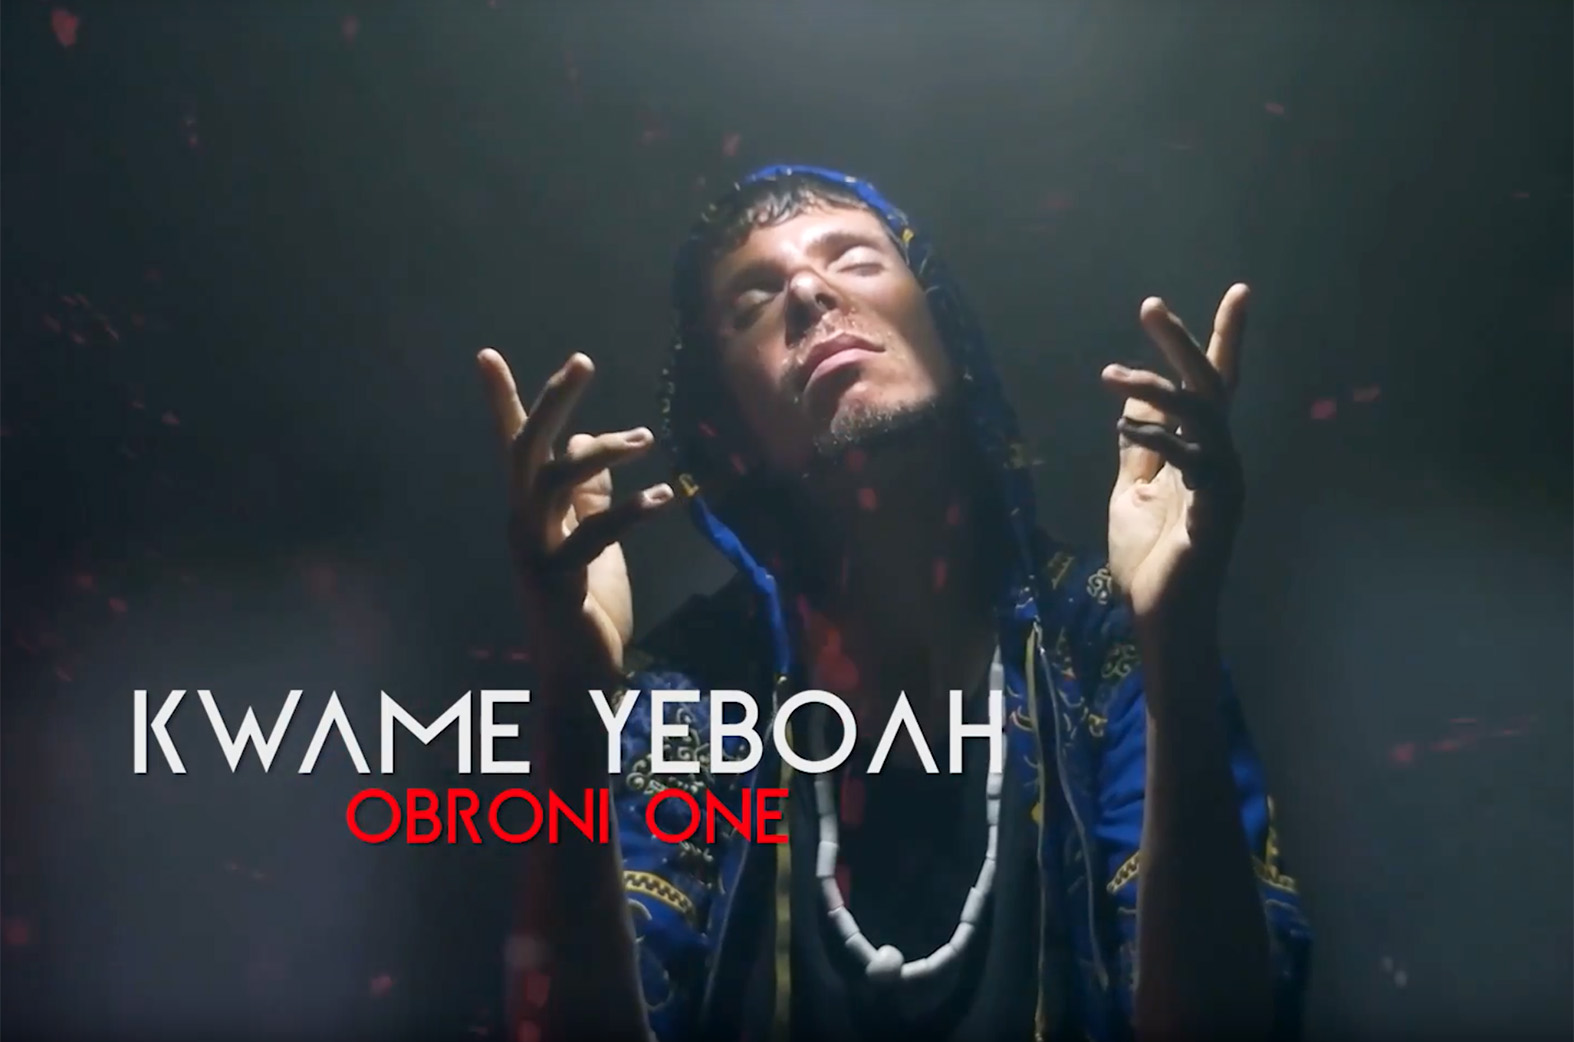 Video: Addicted by Kwame Yeboah (Obroni One)